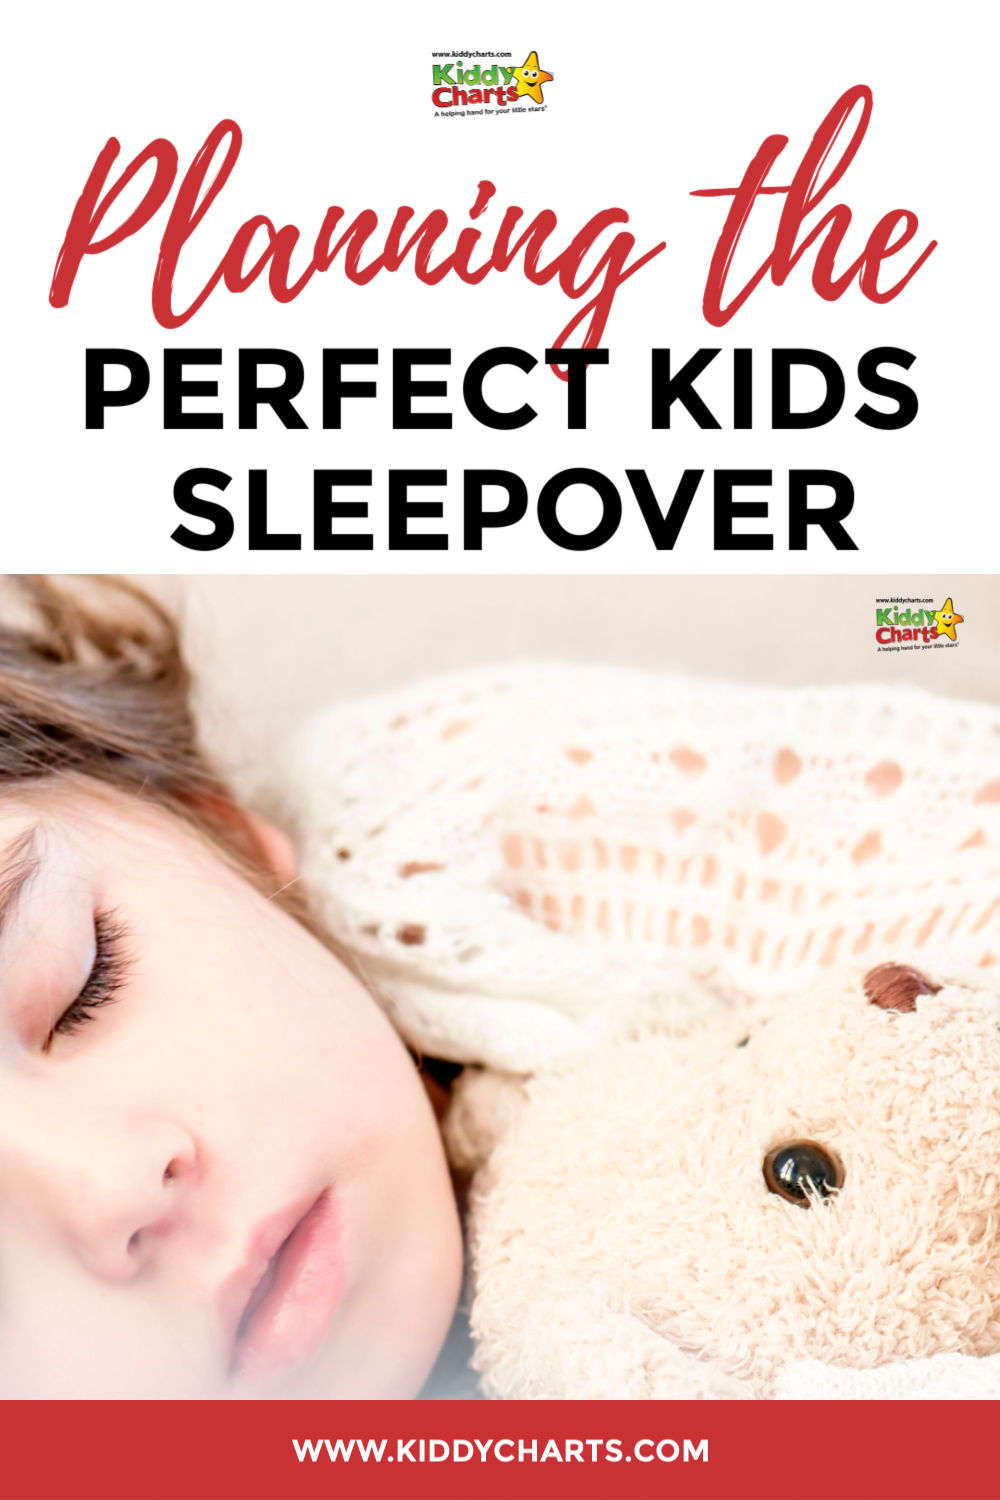 Planning the best kids sleepover